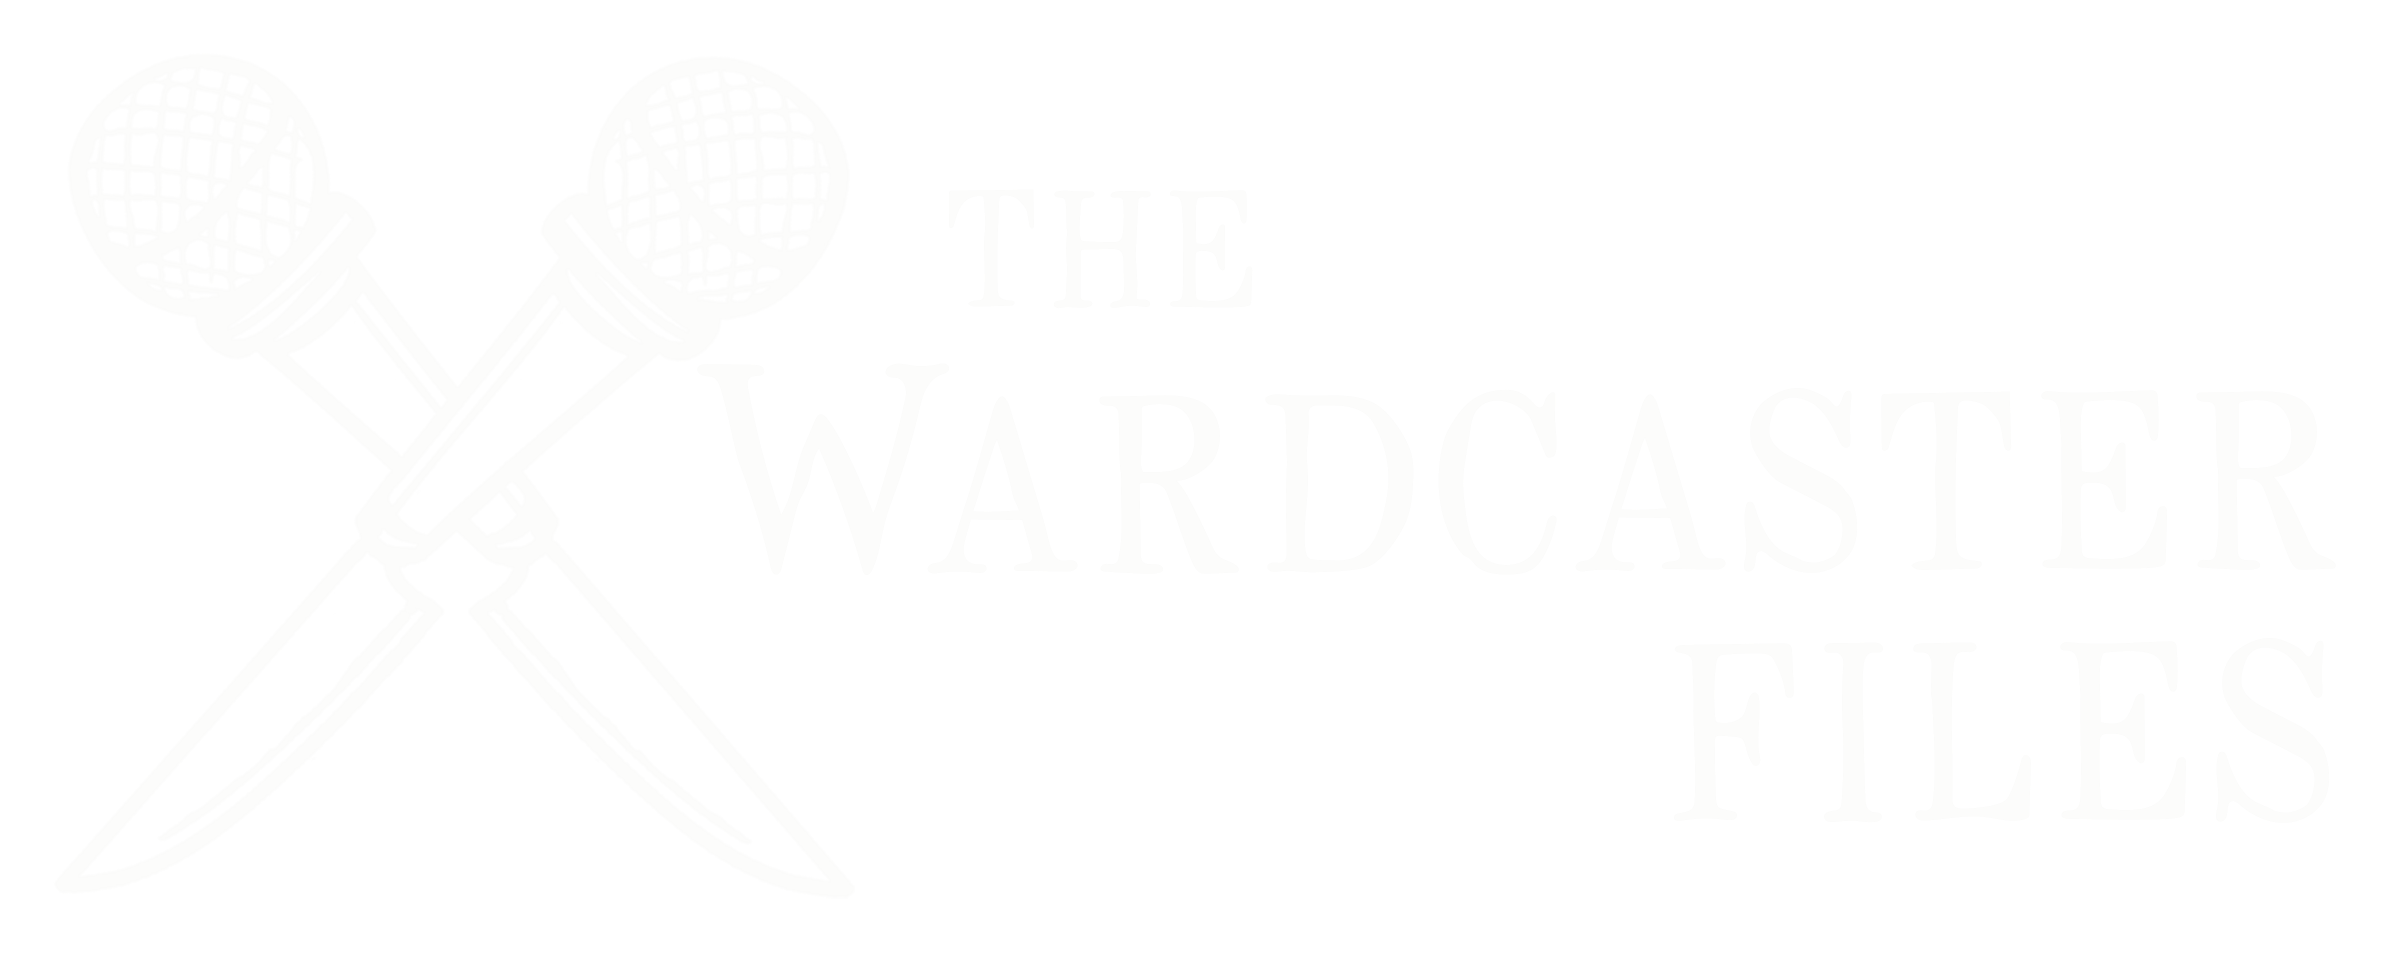 The Wardcaster Files Logo